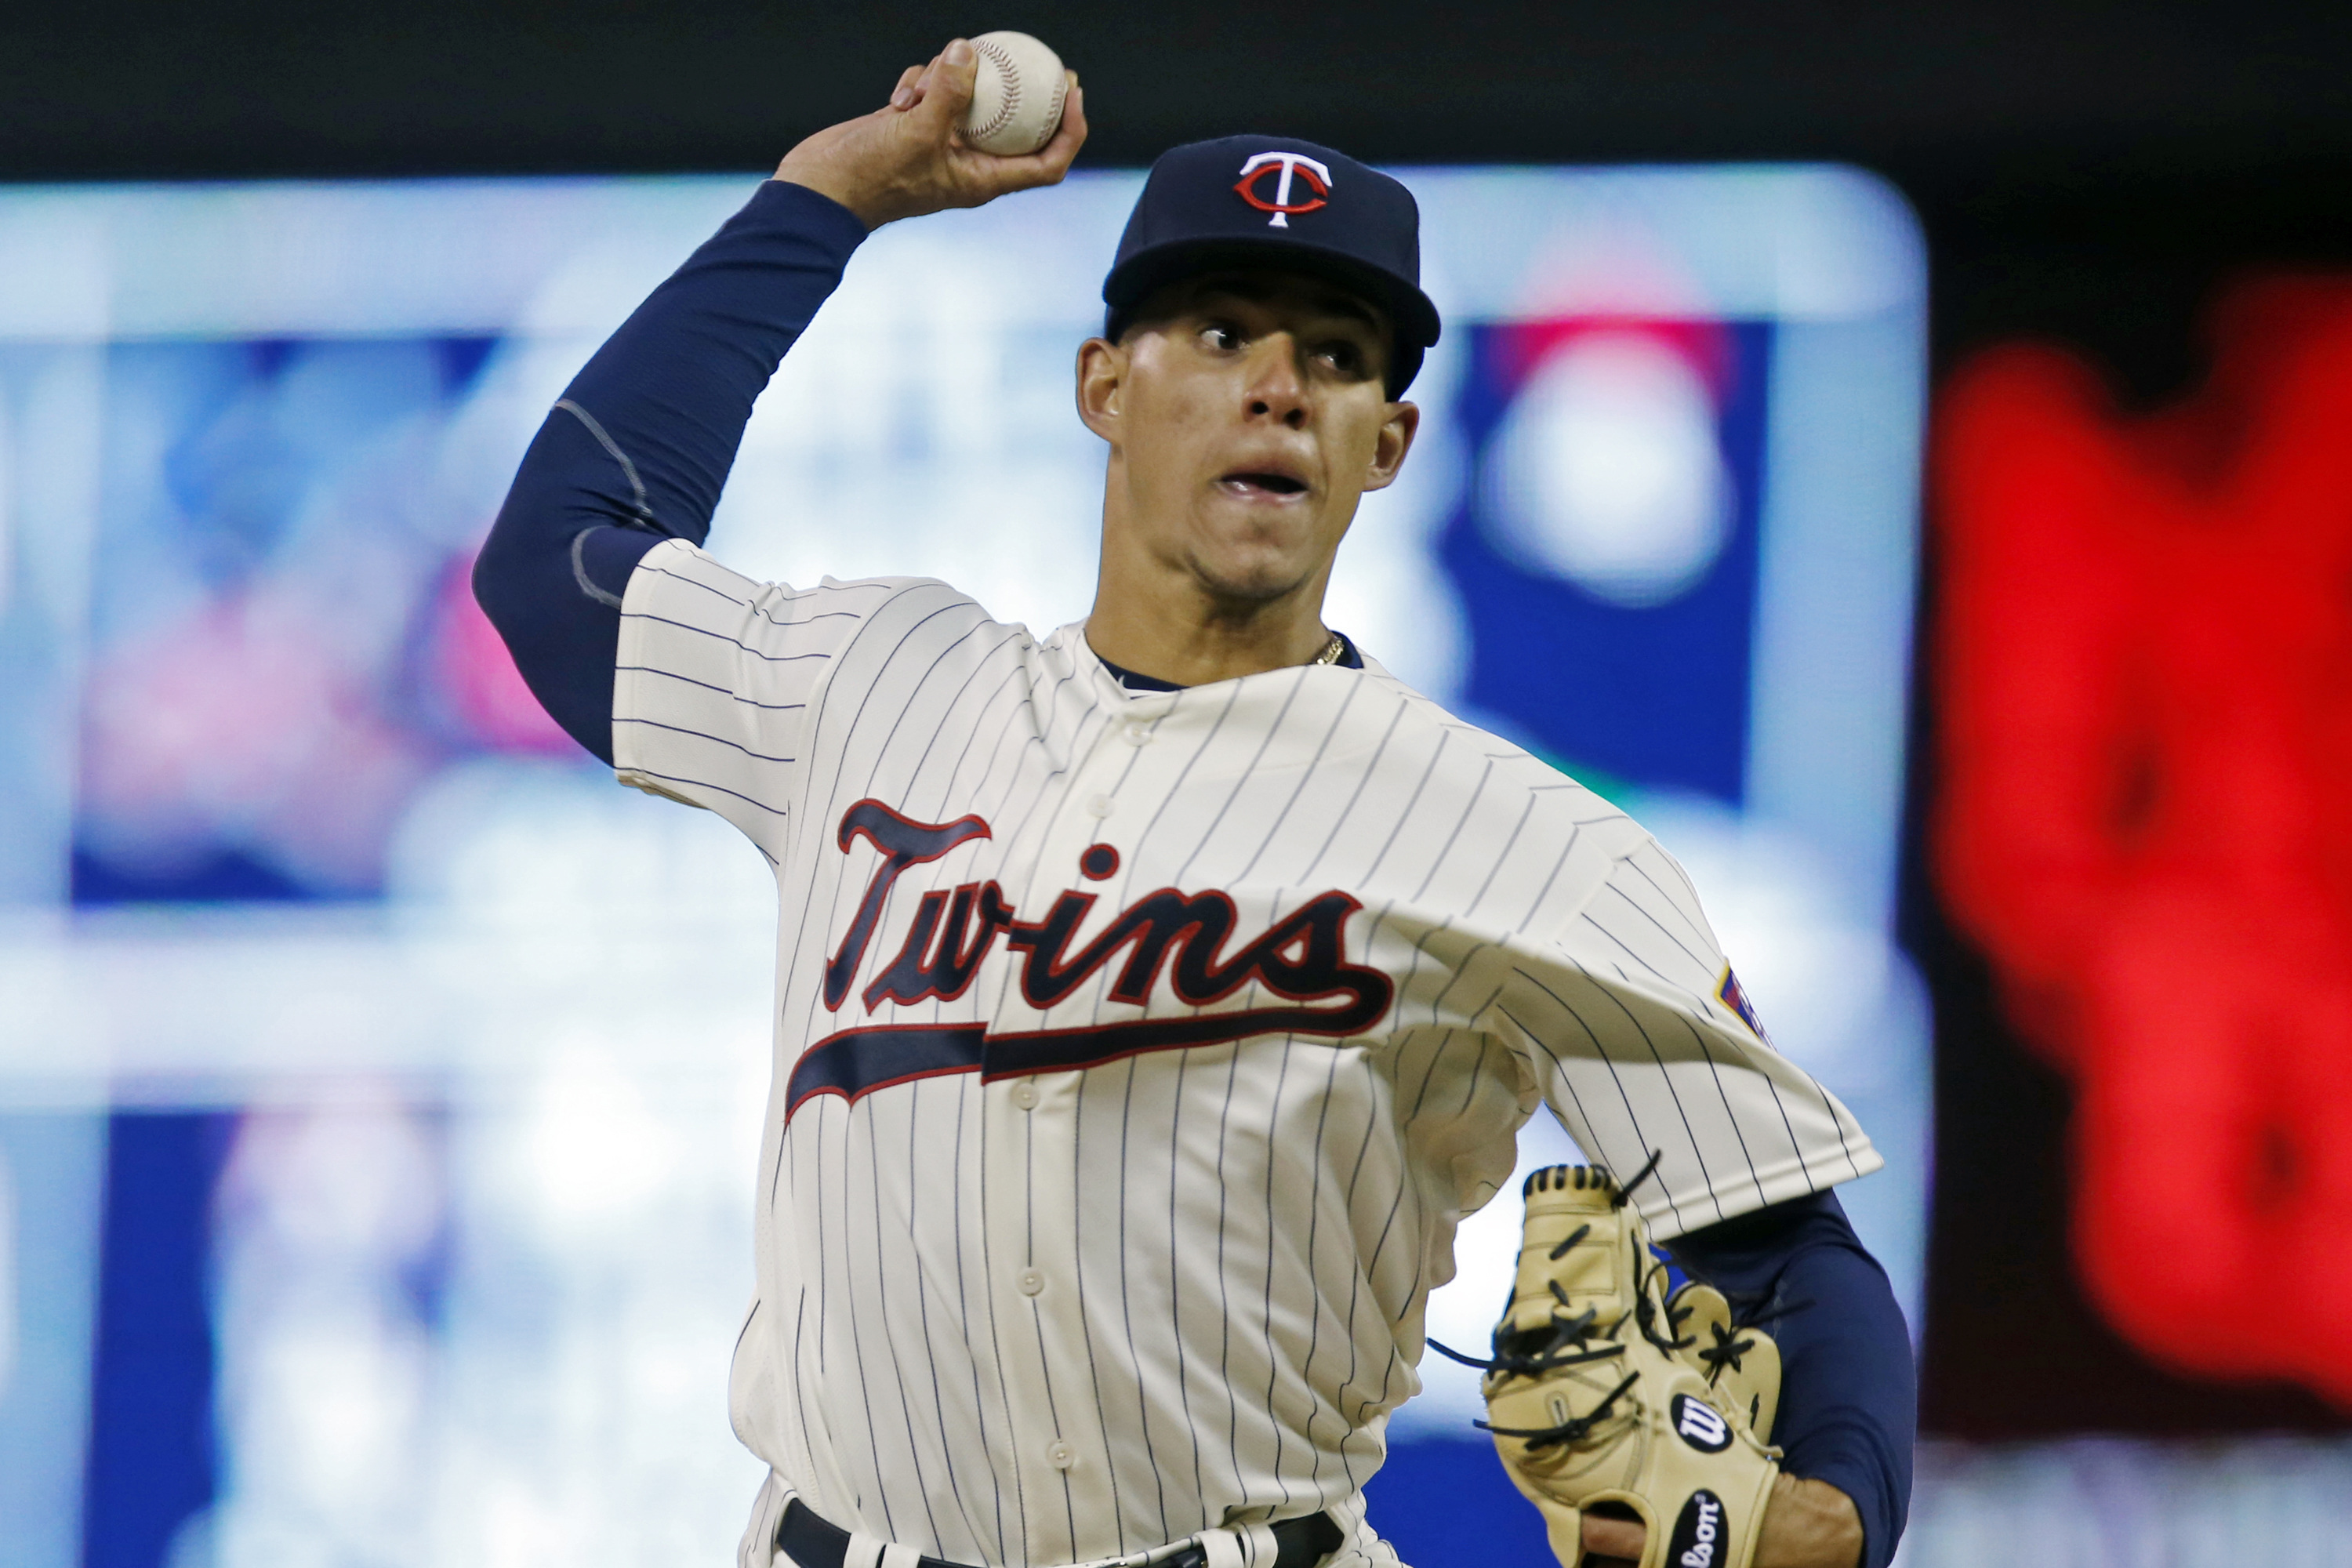 FILE- In this April 27, 2016, file photo, Minnesota Twins pitcher Jose Berrios throws against the Cleveland Indians during the first inning of a baseball game in Minneapolis. Berrios, who has already made four starts in the majors this season, will be pla